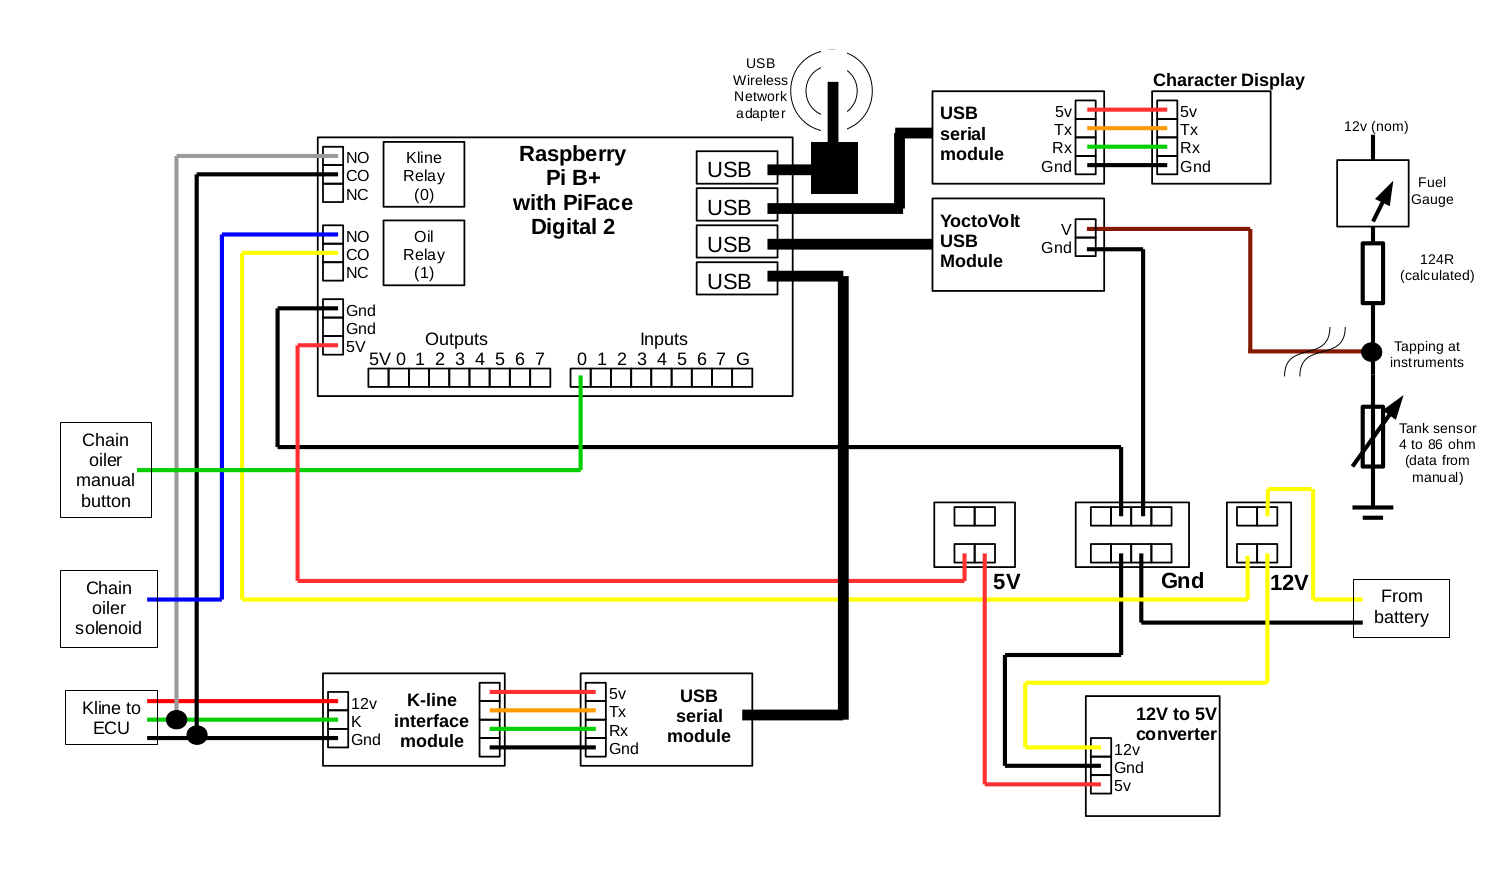 Obd2 To Usb Wiring Diagram | Wiring Diagram - Obd2 To Usb Wiring Diagram